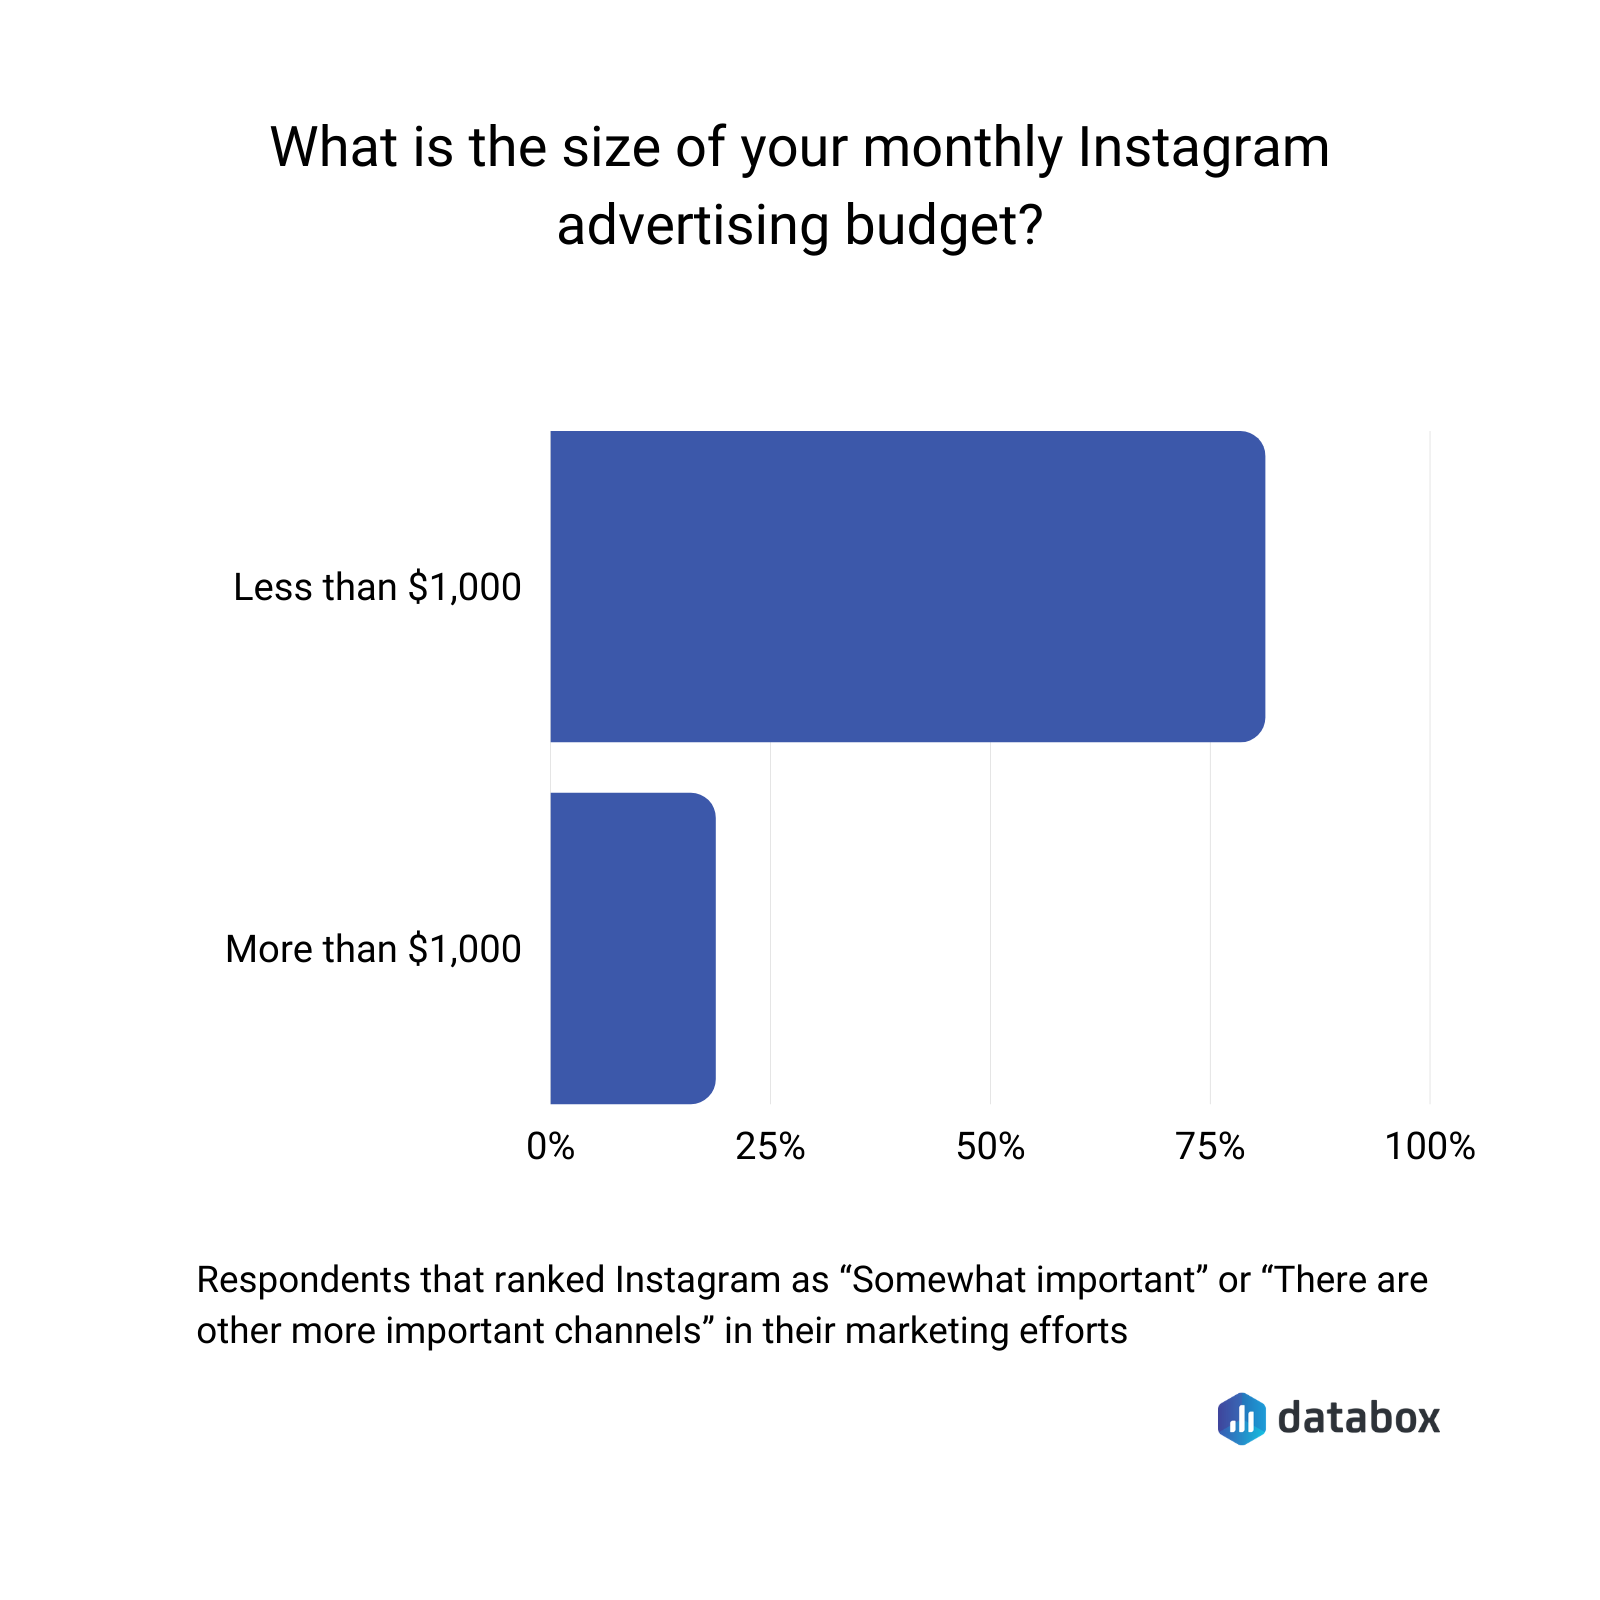 Instagram monthly advertising budget size